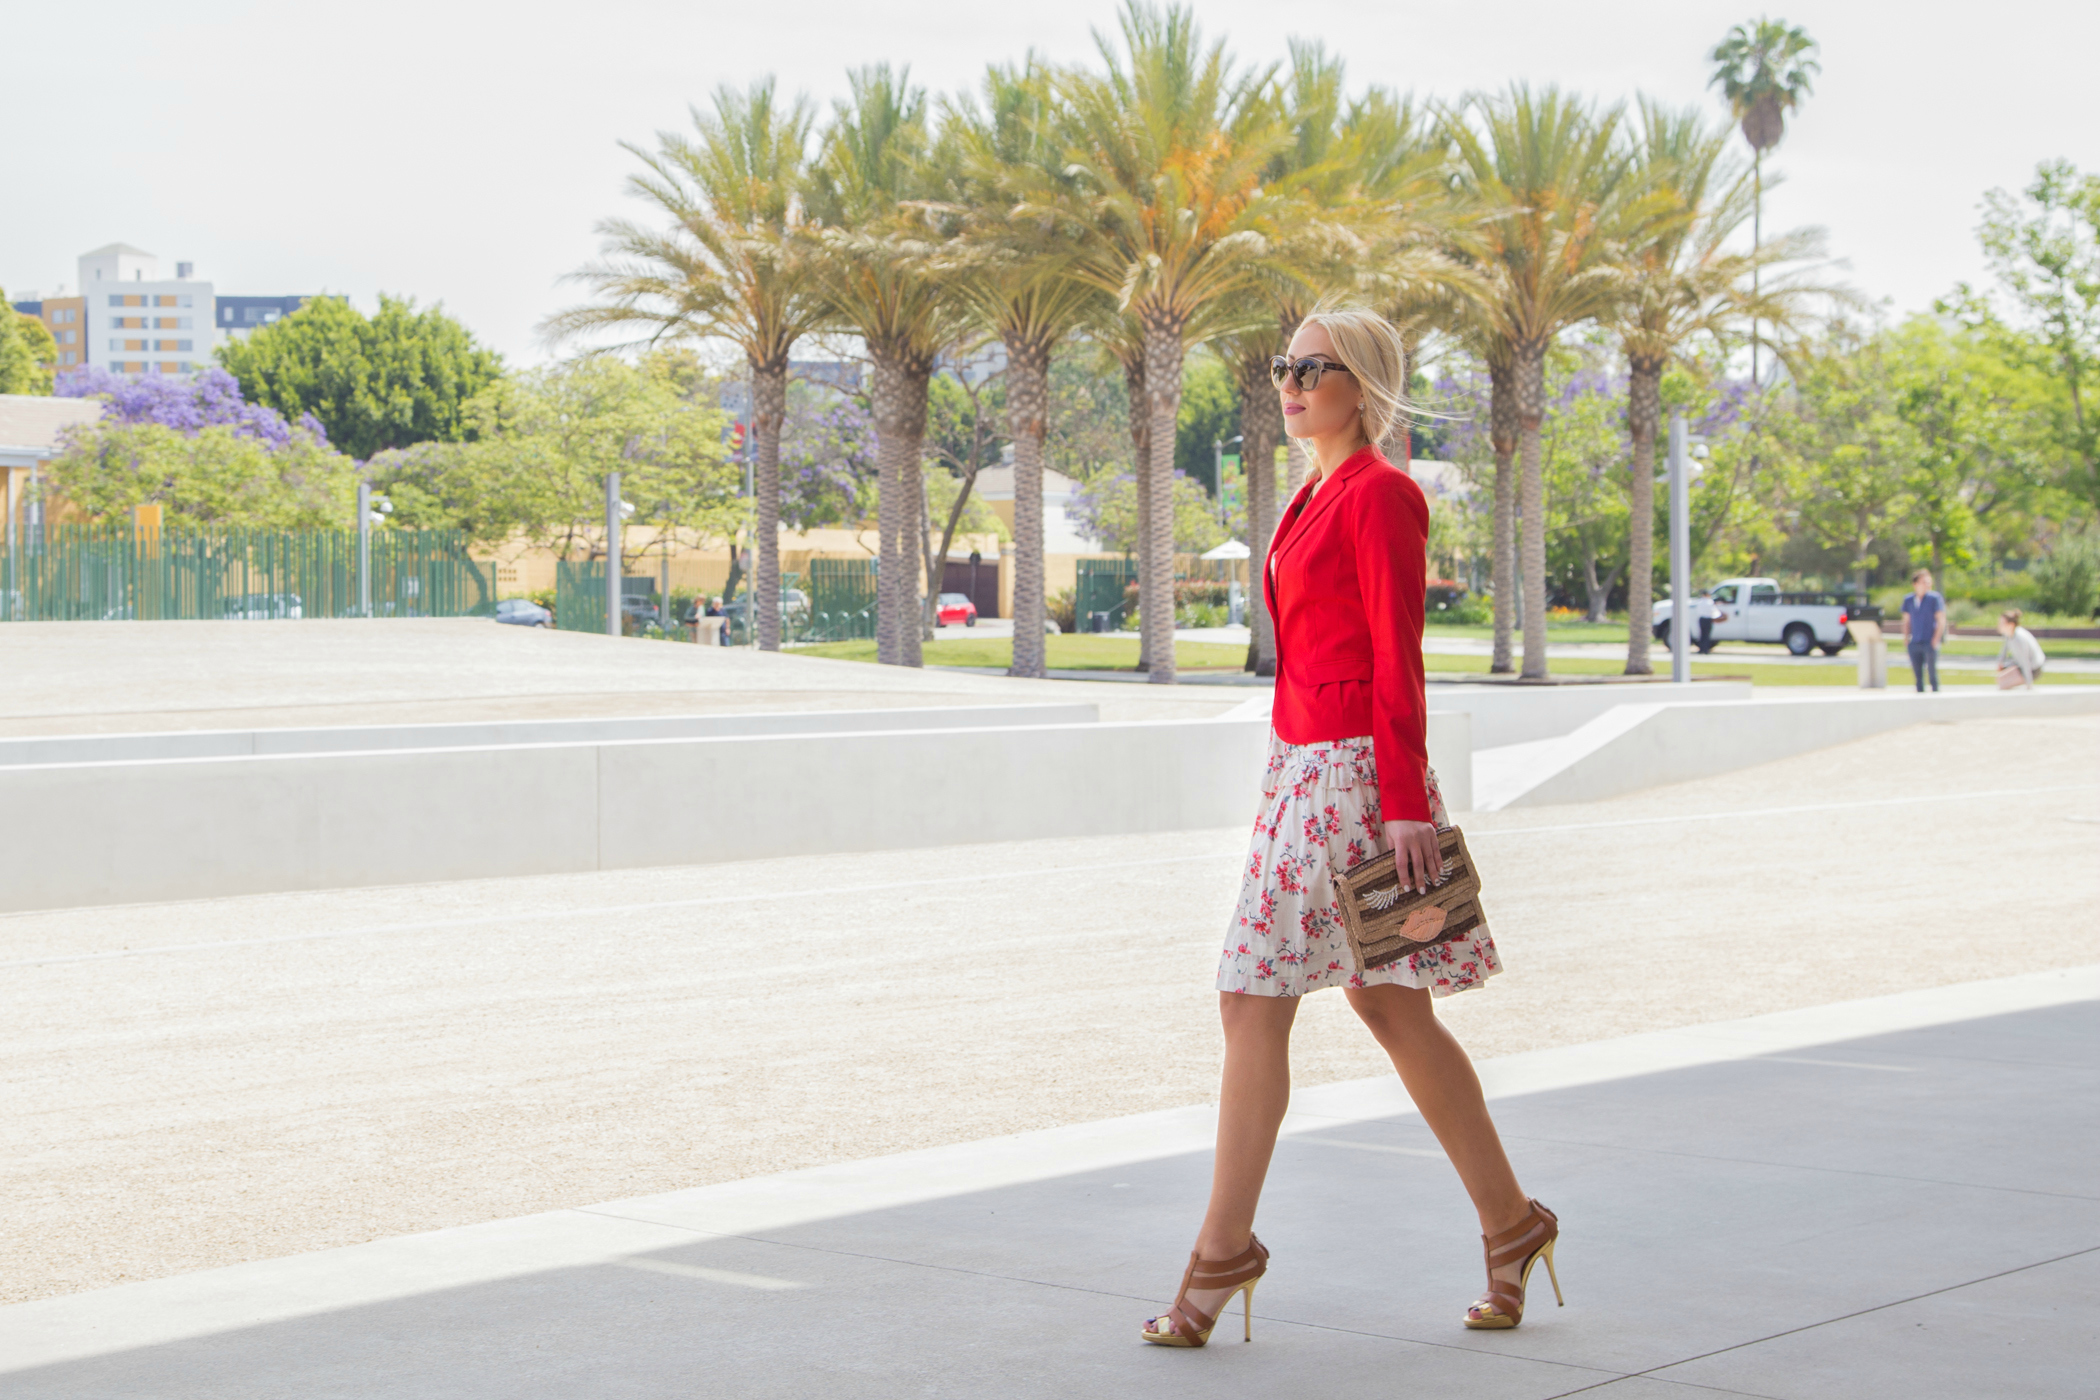 valentino dress,floral dress,red valentino dress,dior heels,dior sandals,dior shoes,red and floral outfit